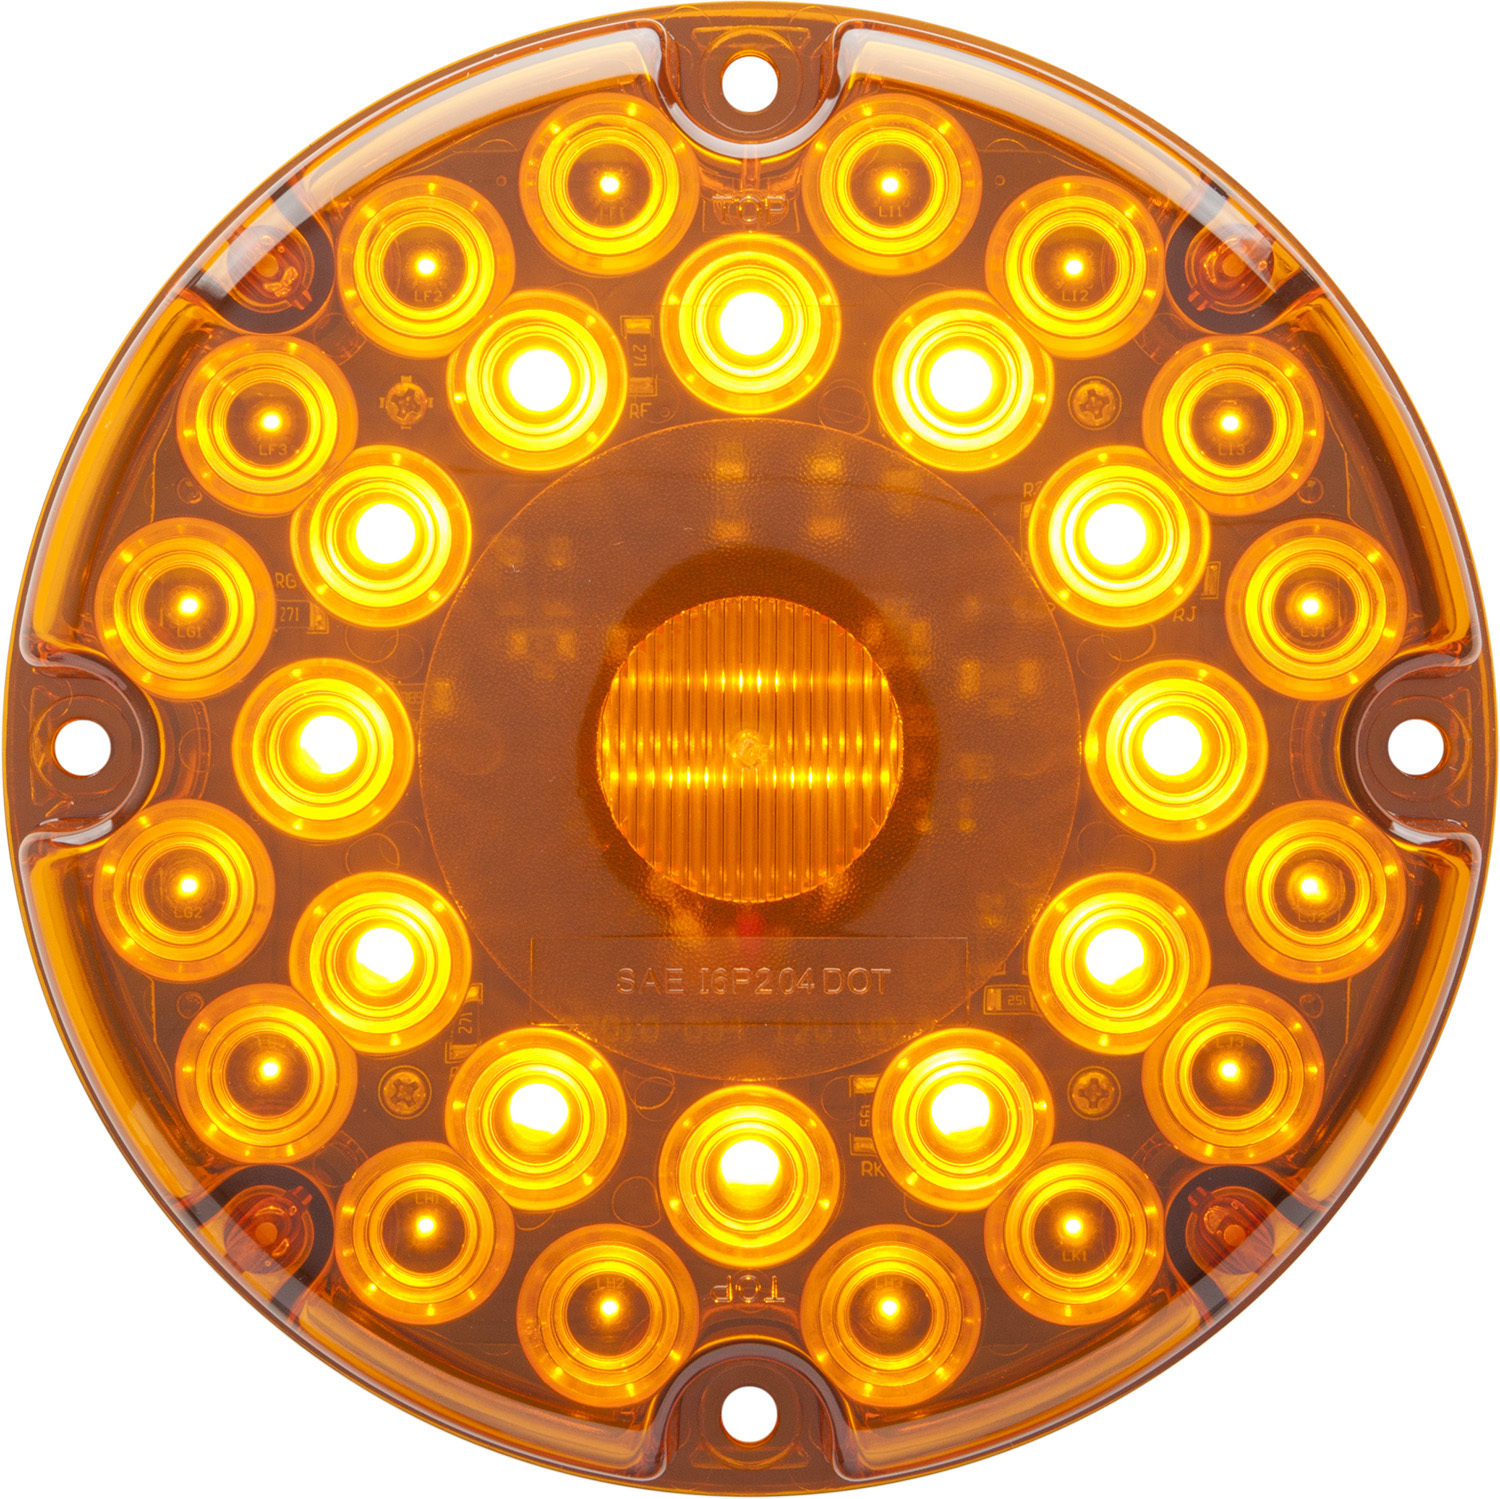 STL90AB_OPTRONICS STL90AB Yellow Parking Turn Signal Built-in Reflex Gasket Installed Hard-Wired 12v